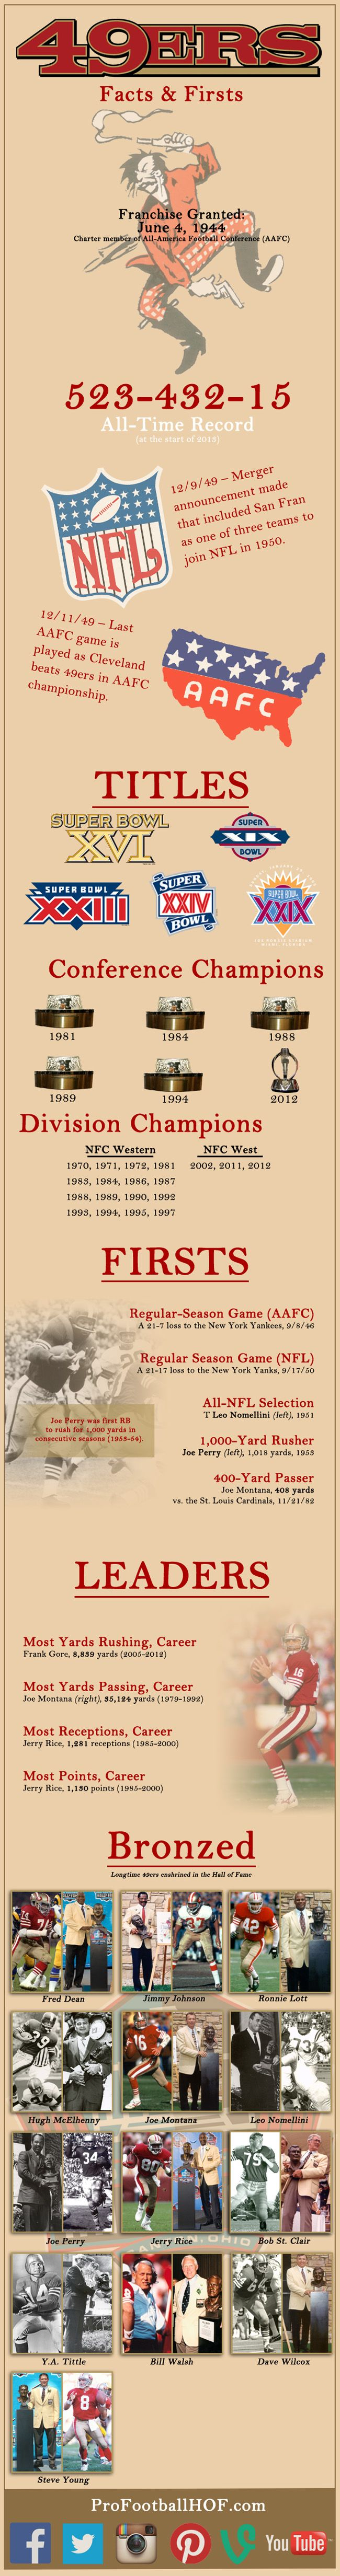 Infographic - Facts and Firsts: San Francisco #49ers